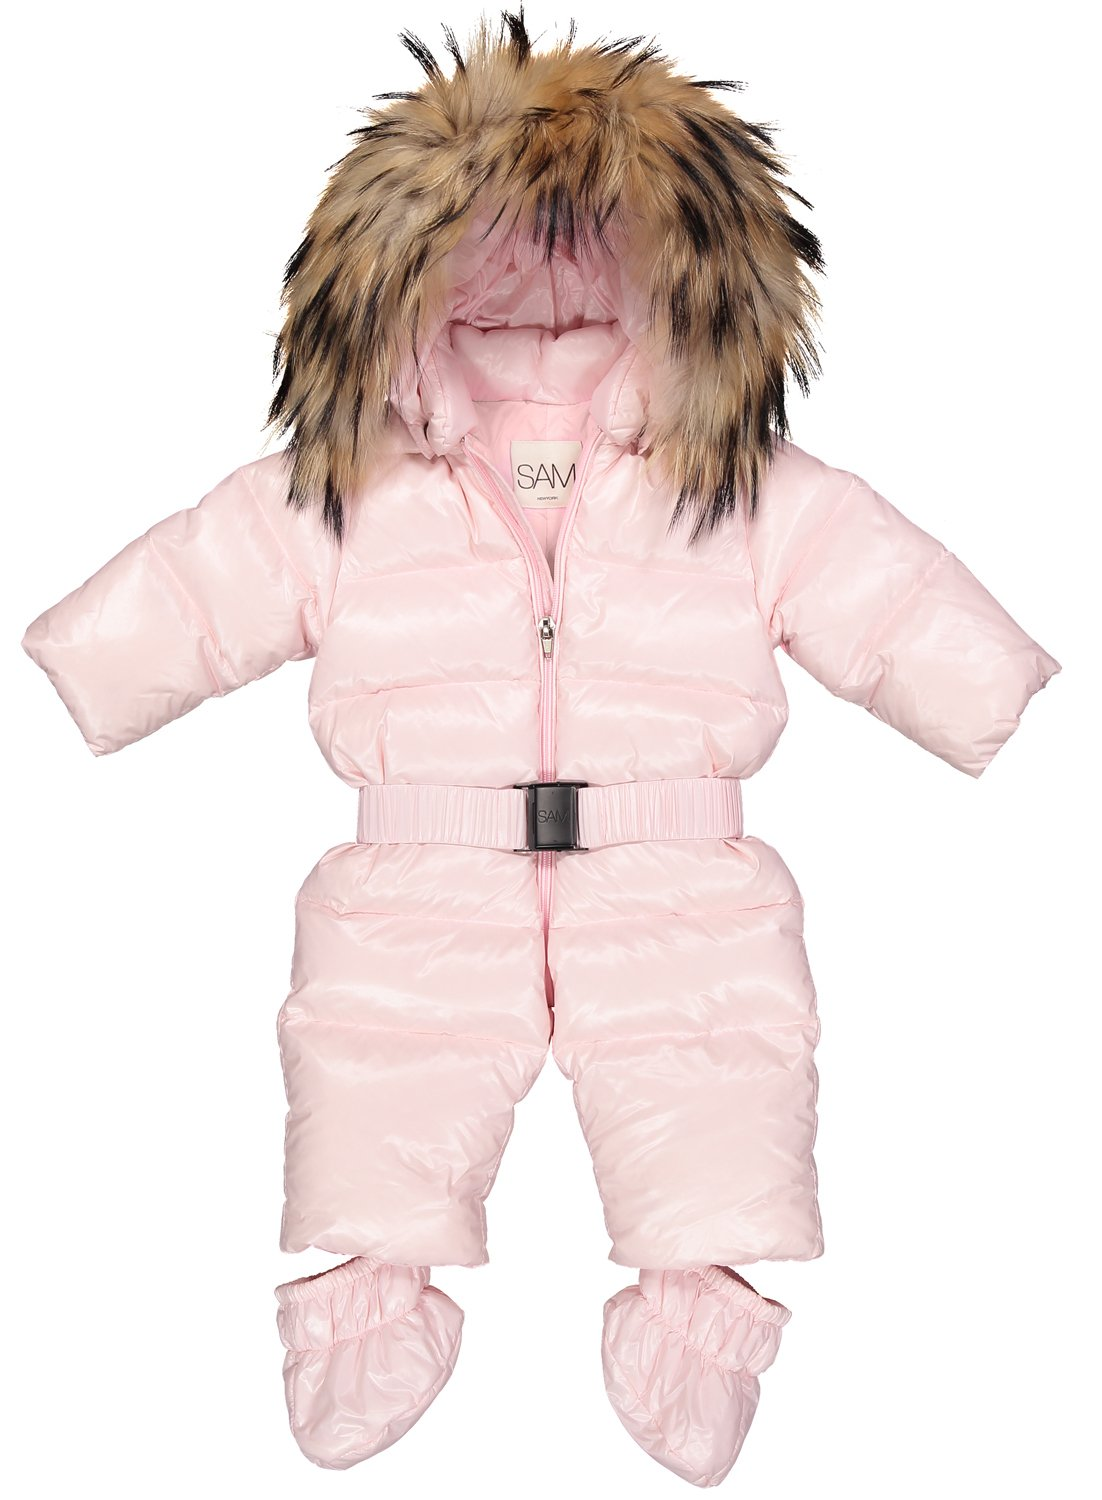 SNOWBUNNY SUIT SNOWBUNNY SUIT - SAM. New York Sam nyc jacket